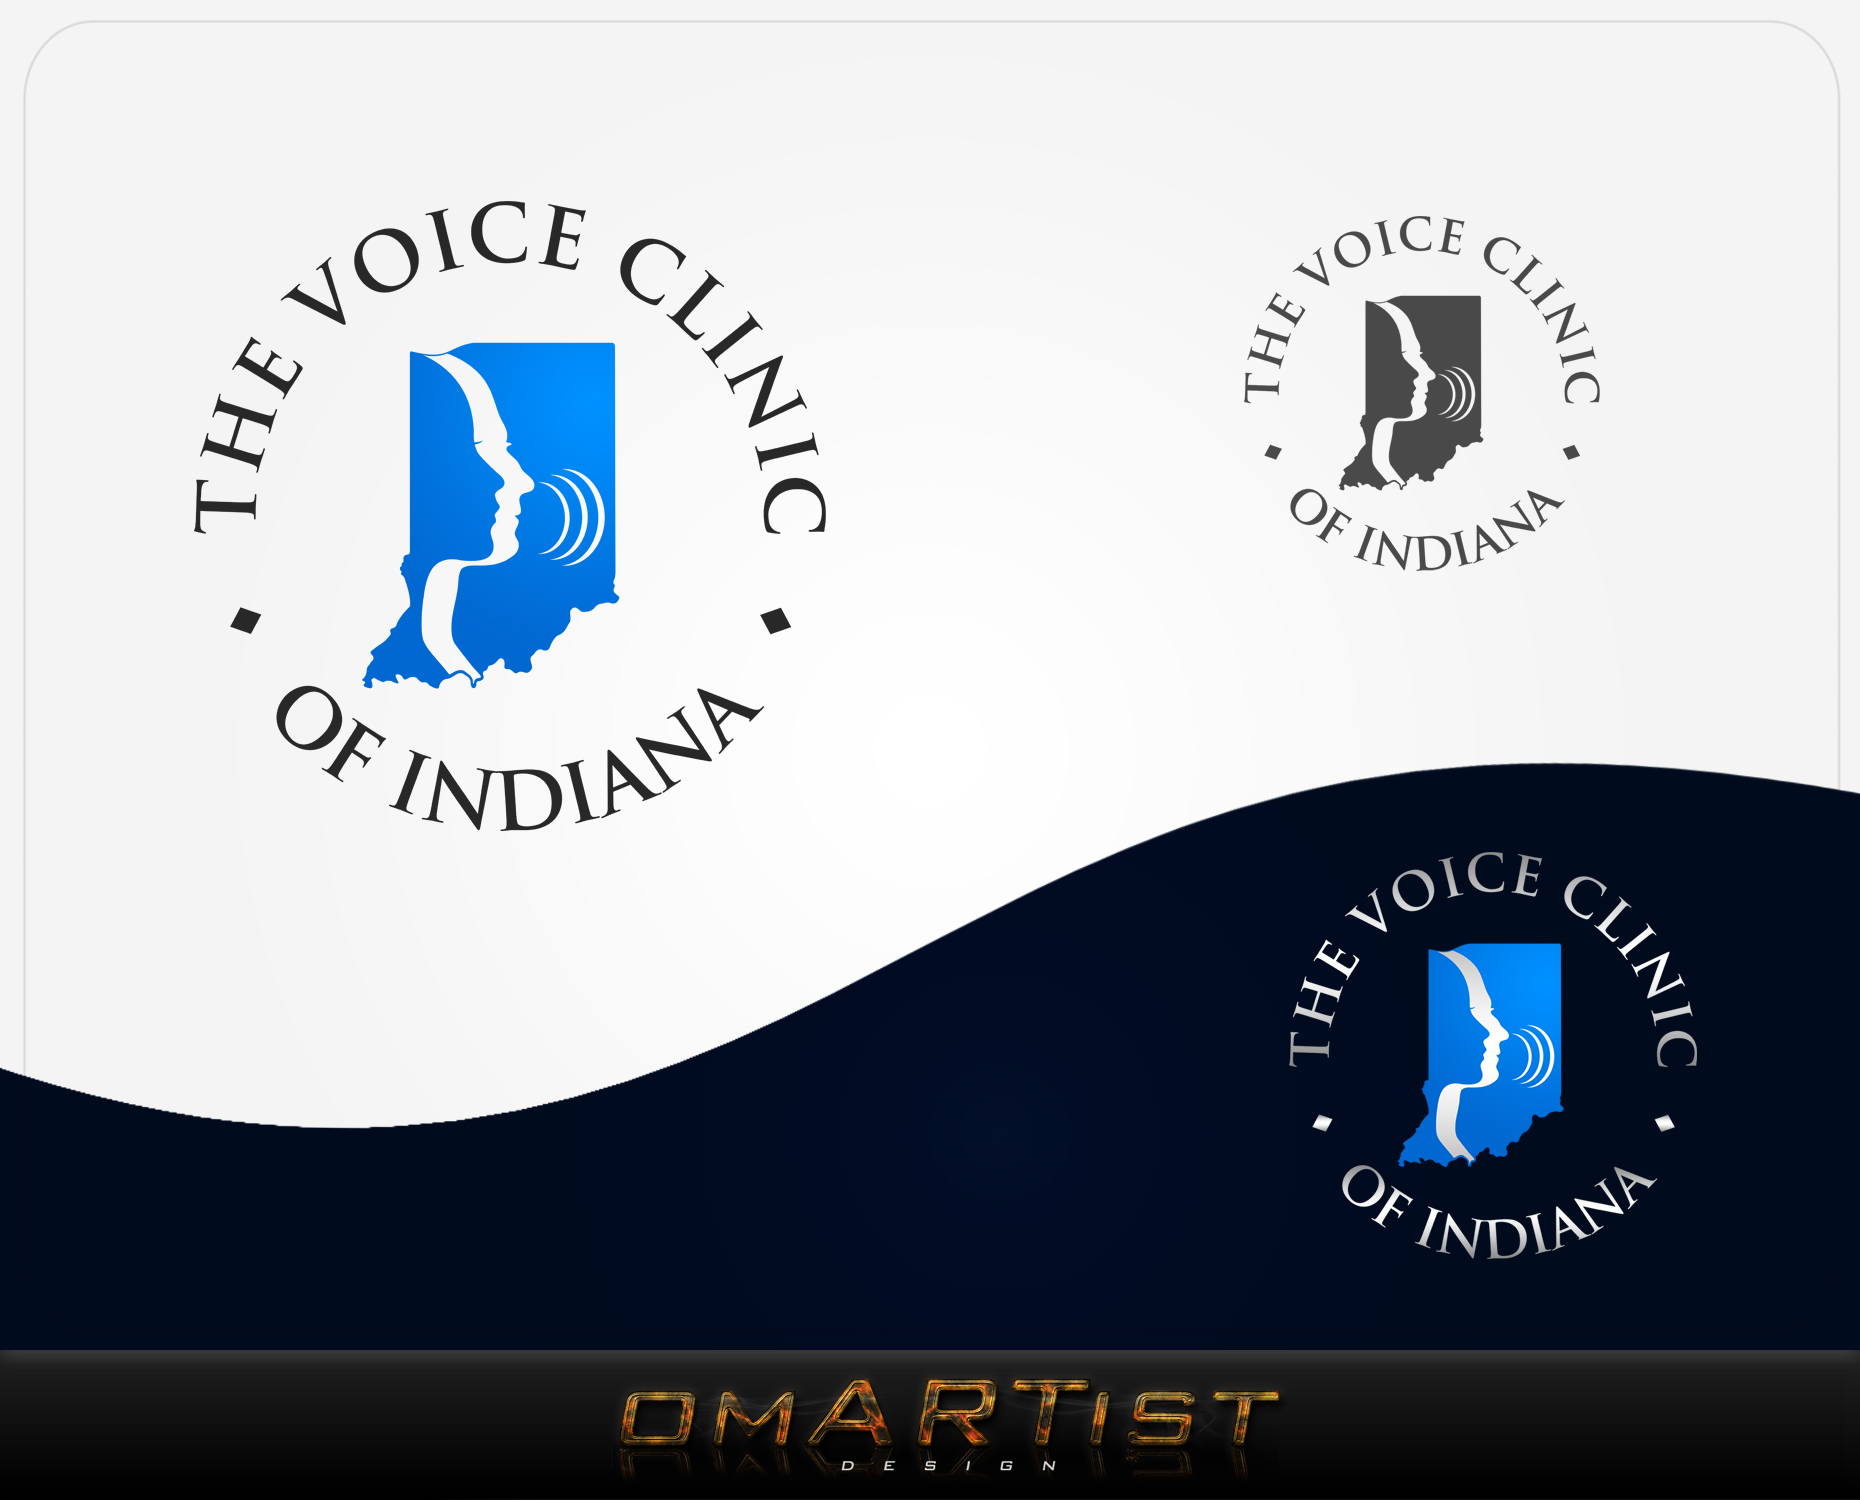 Logo Design by omARTist - Entry No. 39 in the Logo Design Contest Logo Design for The Voice Clinic of Indiana.